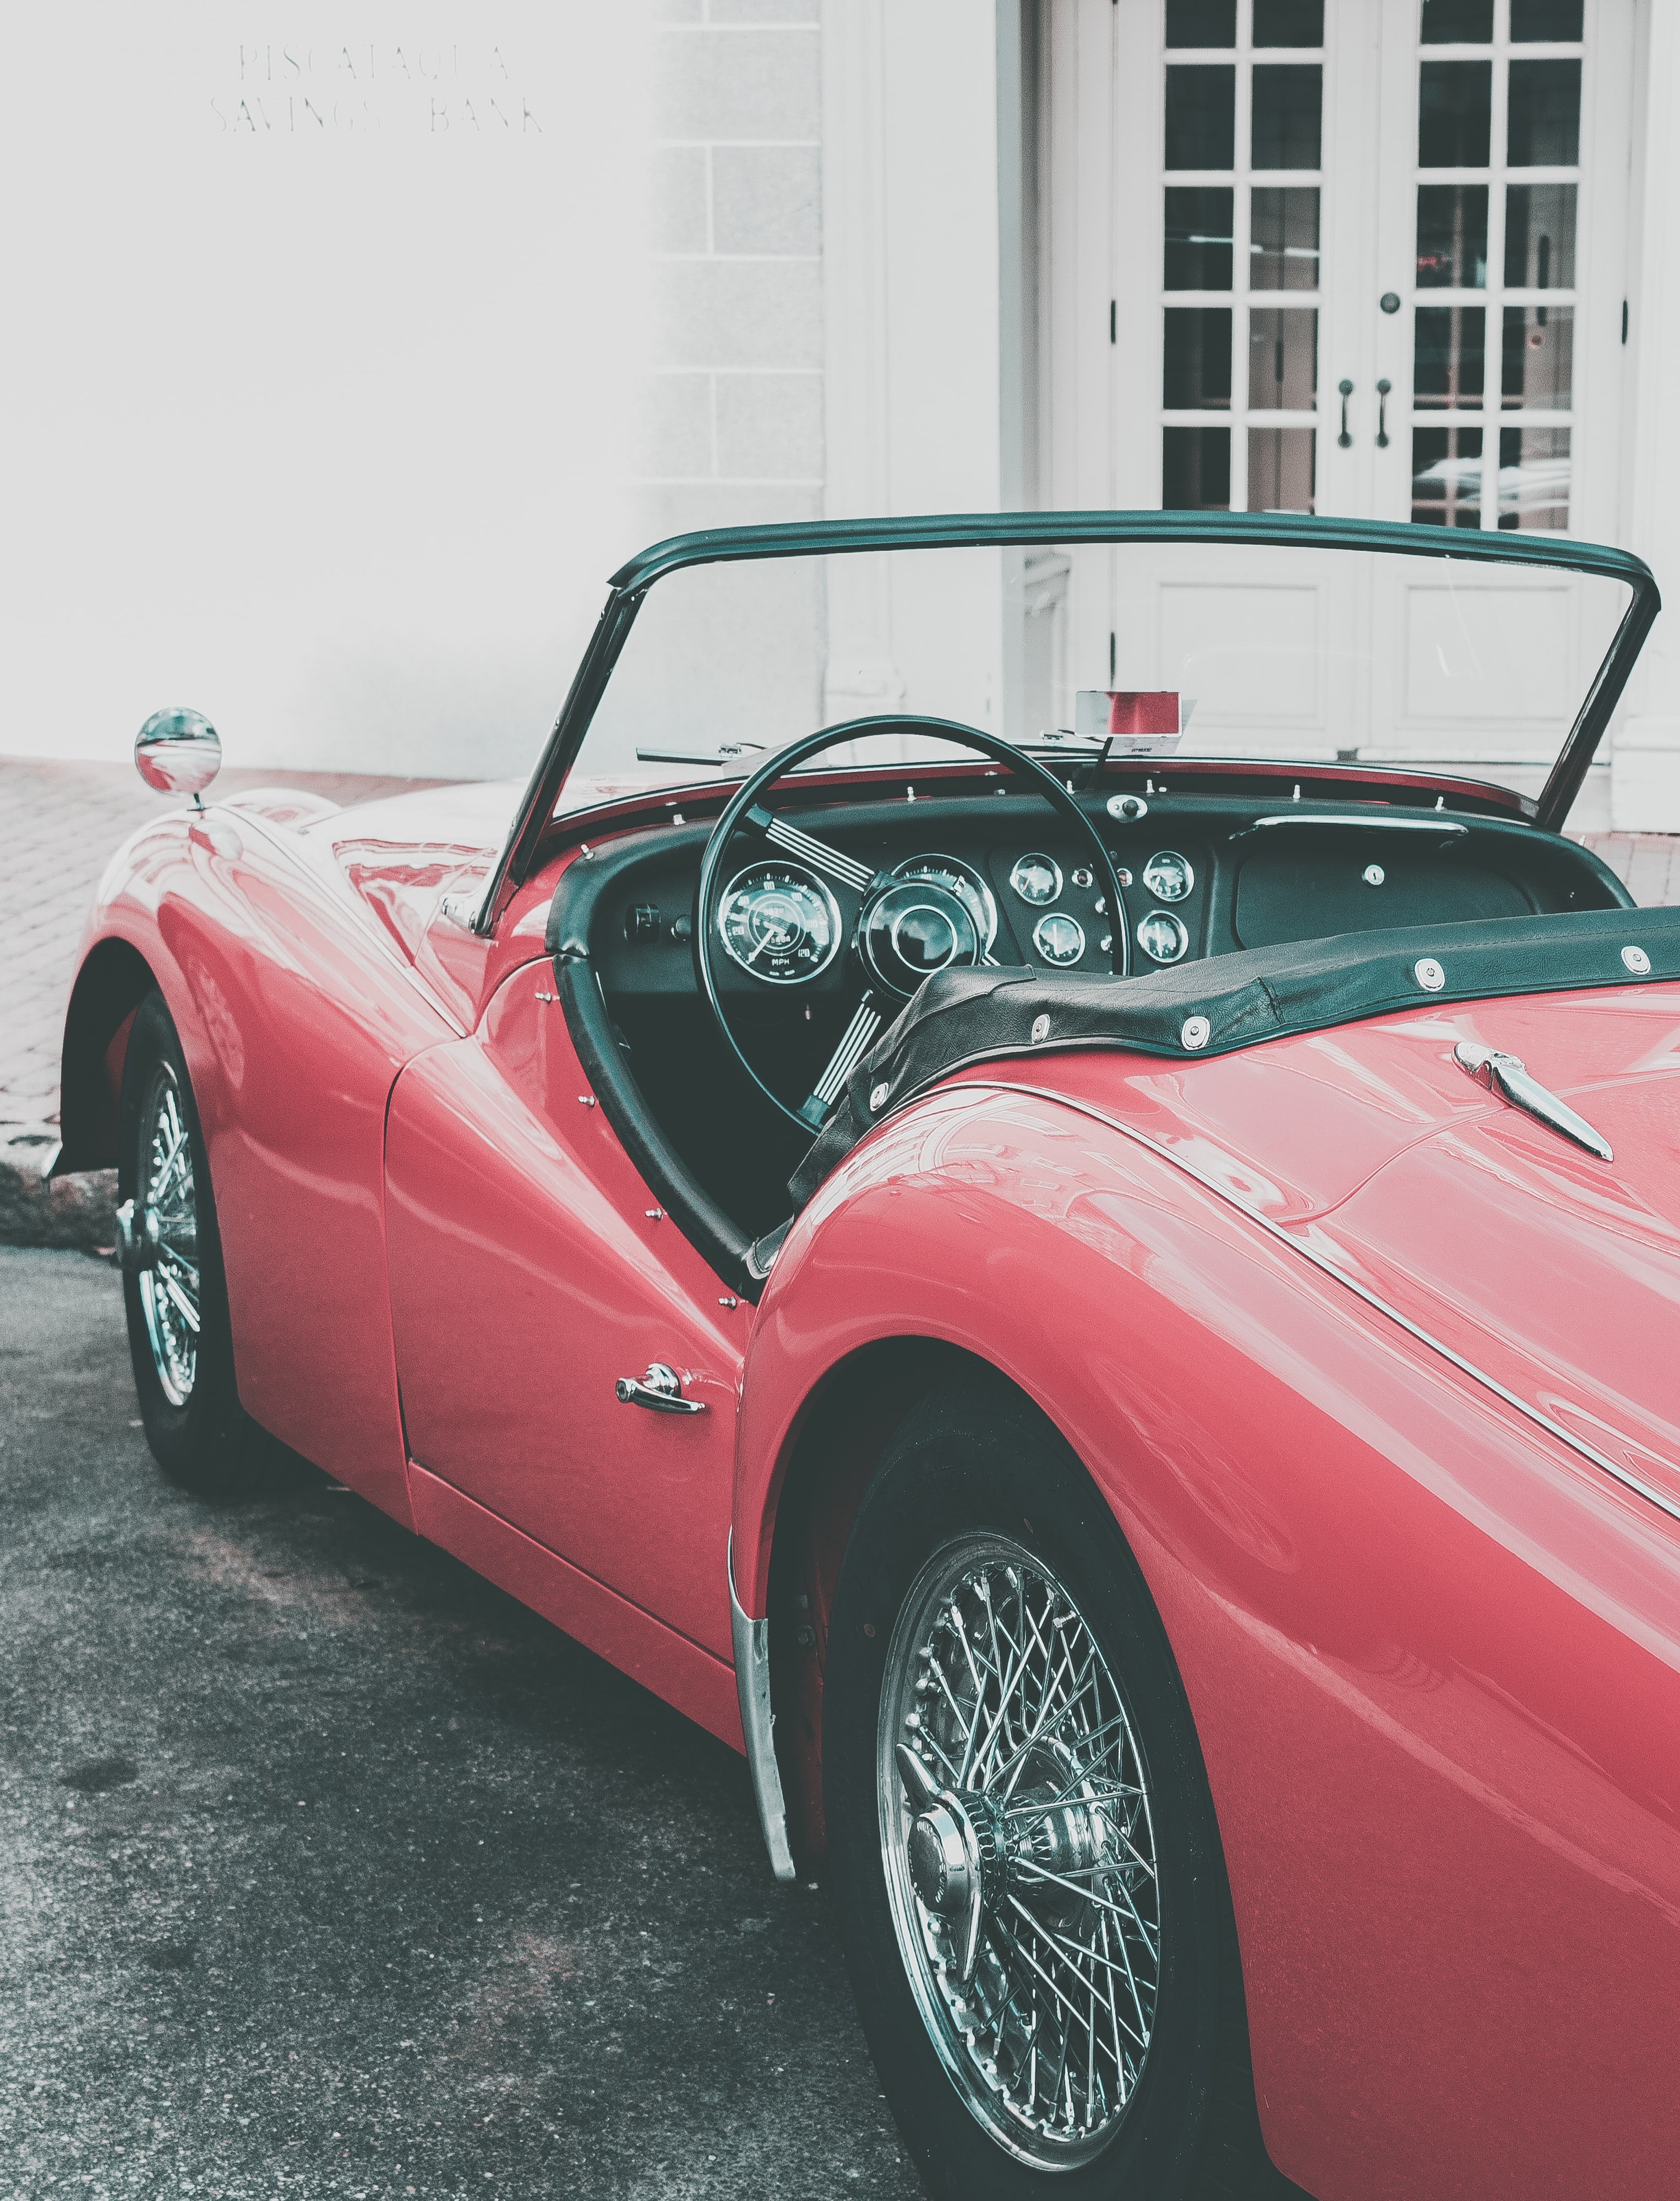 A red convertible parked outside.